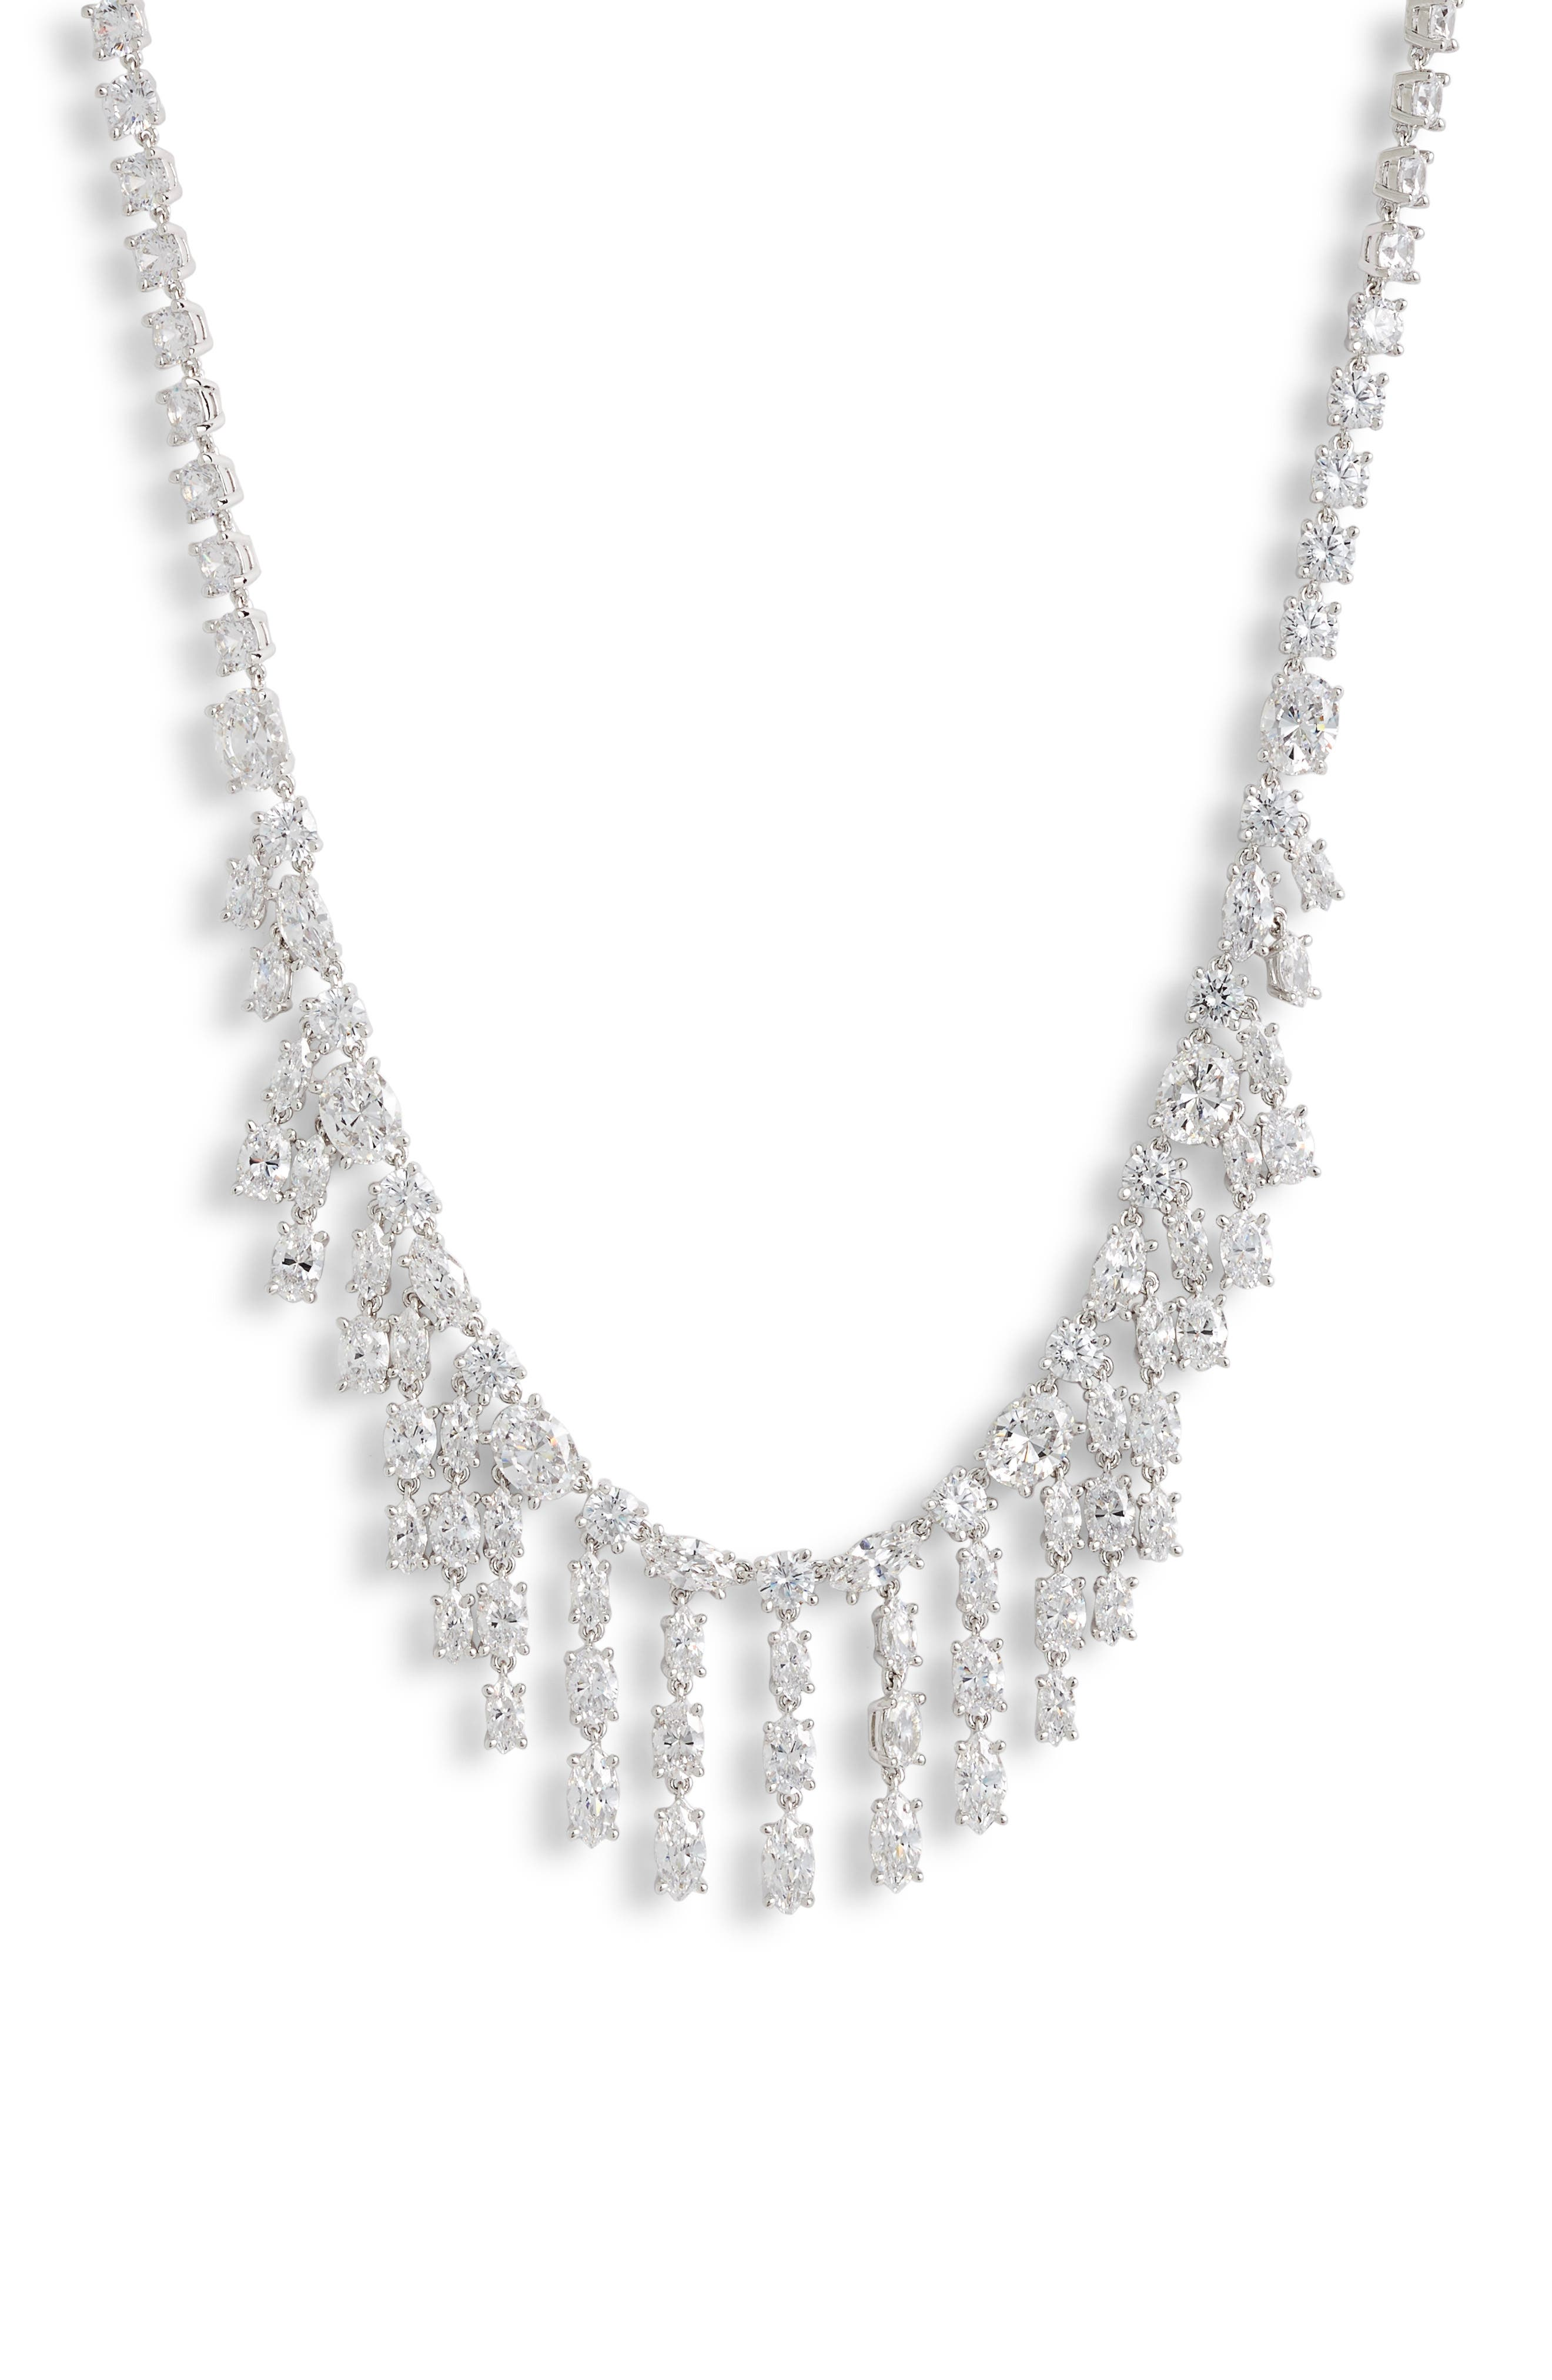 Cubic Zirconia Fringe Necklace,                             Main thumbnail 1, color,                             CLEAR- SILVER